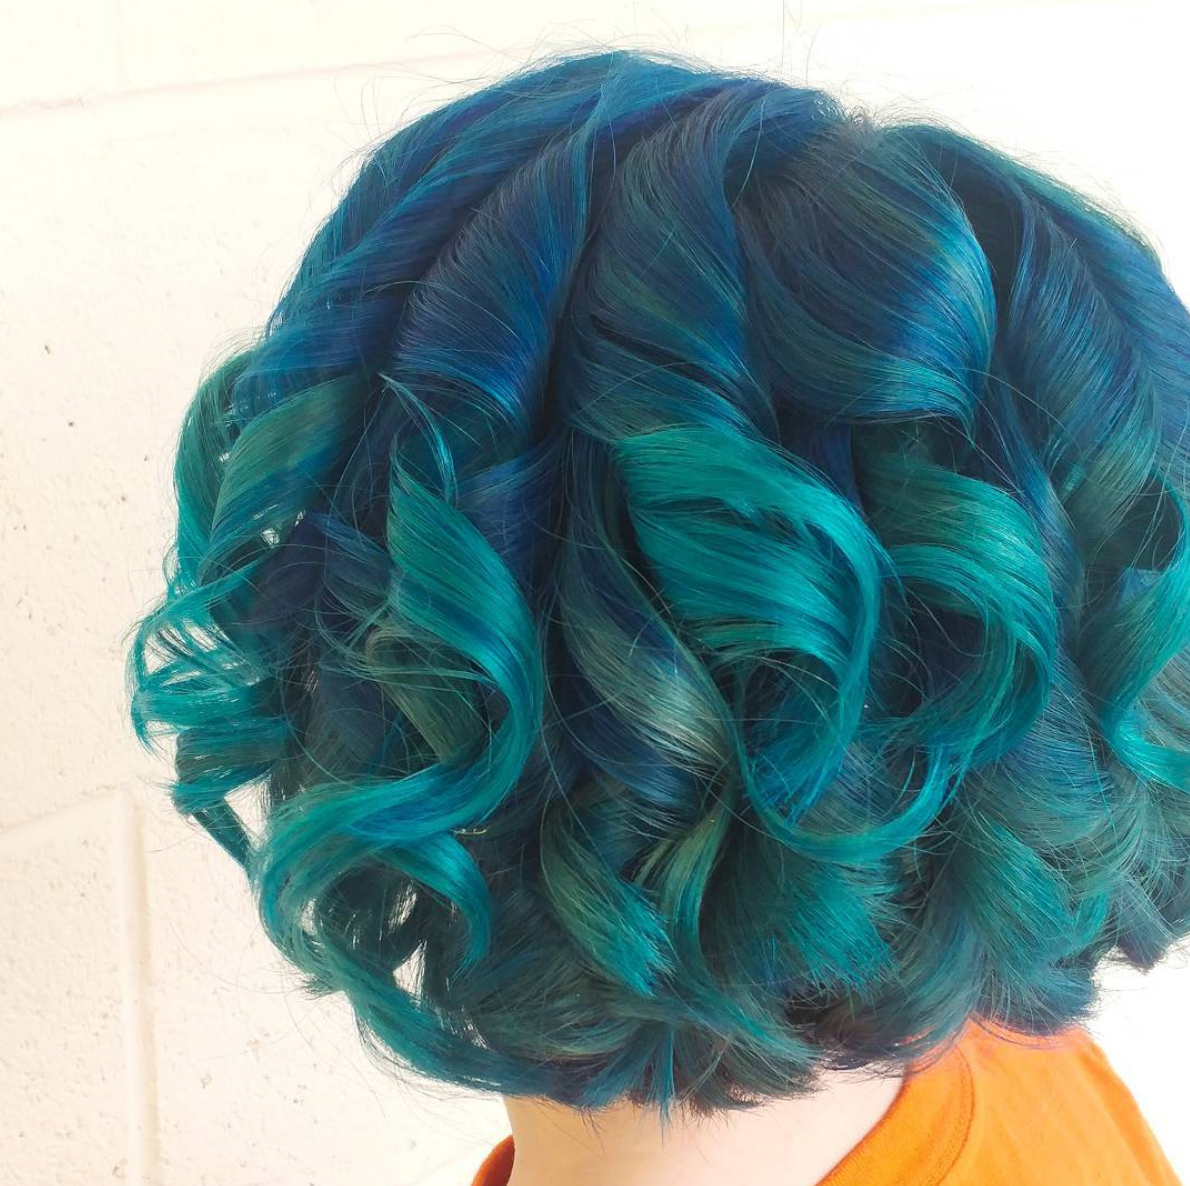 Dark blue and teal hair colors at Oliver Finley Academy of